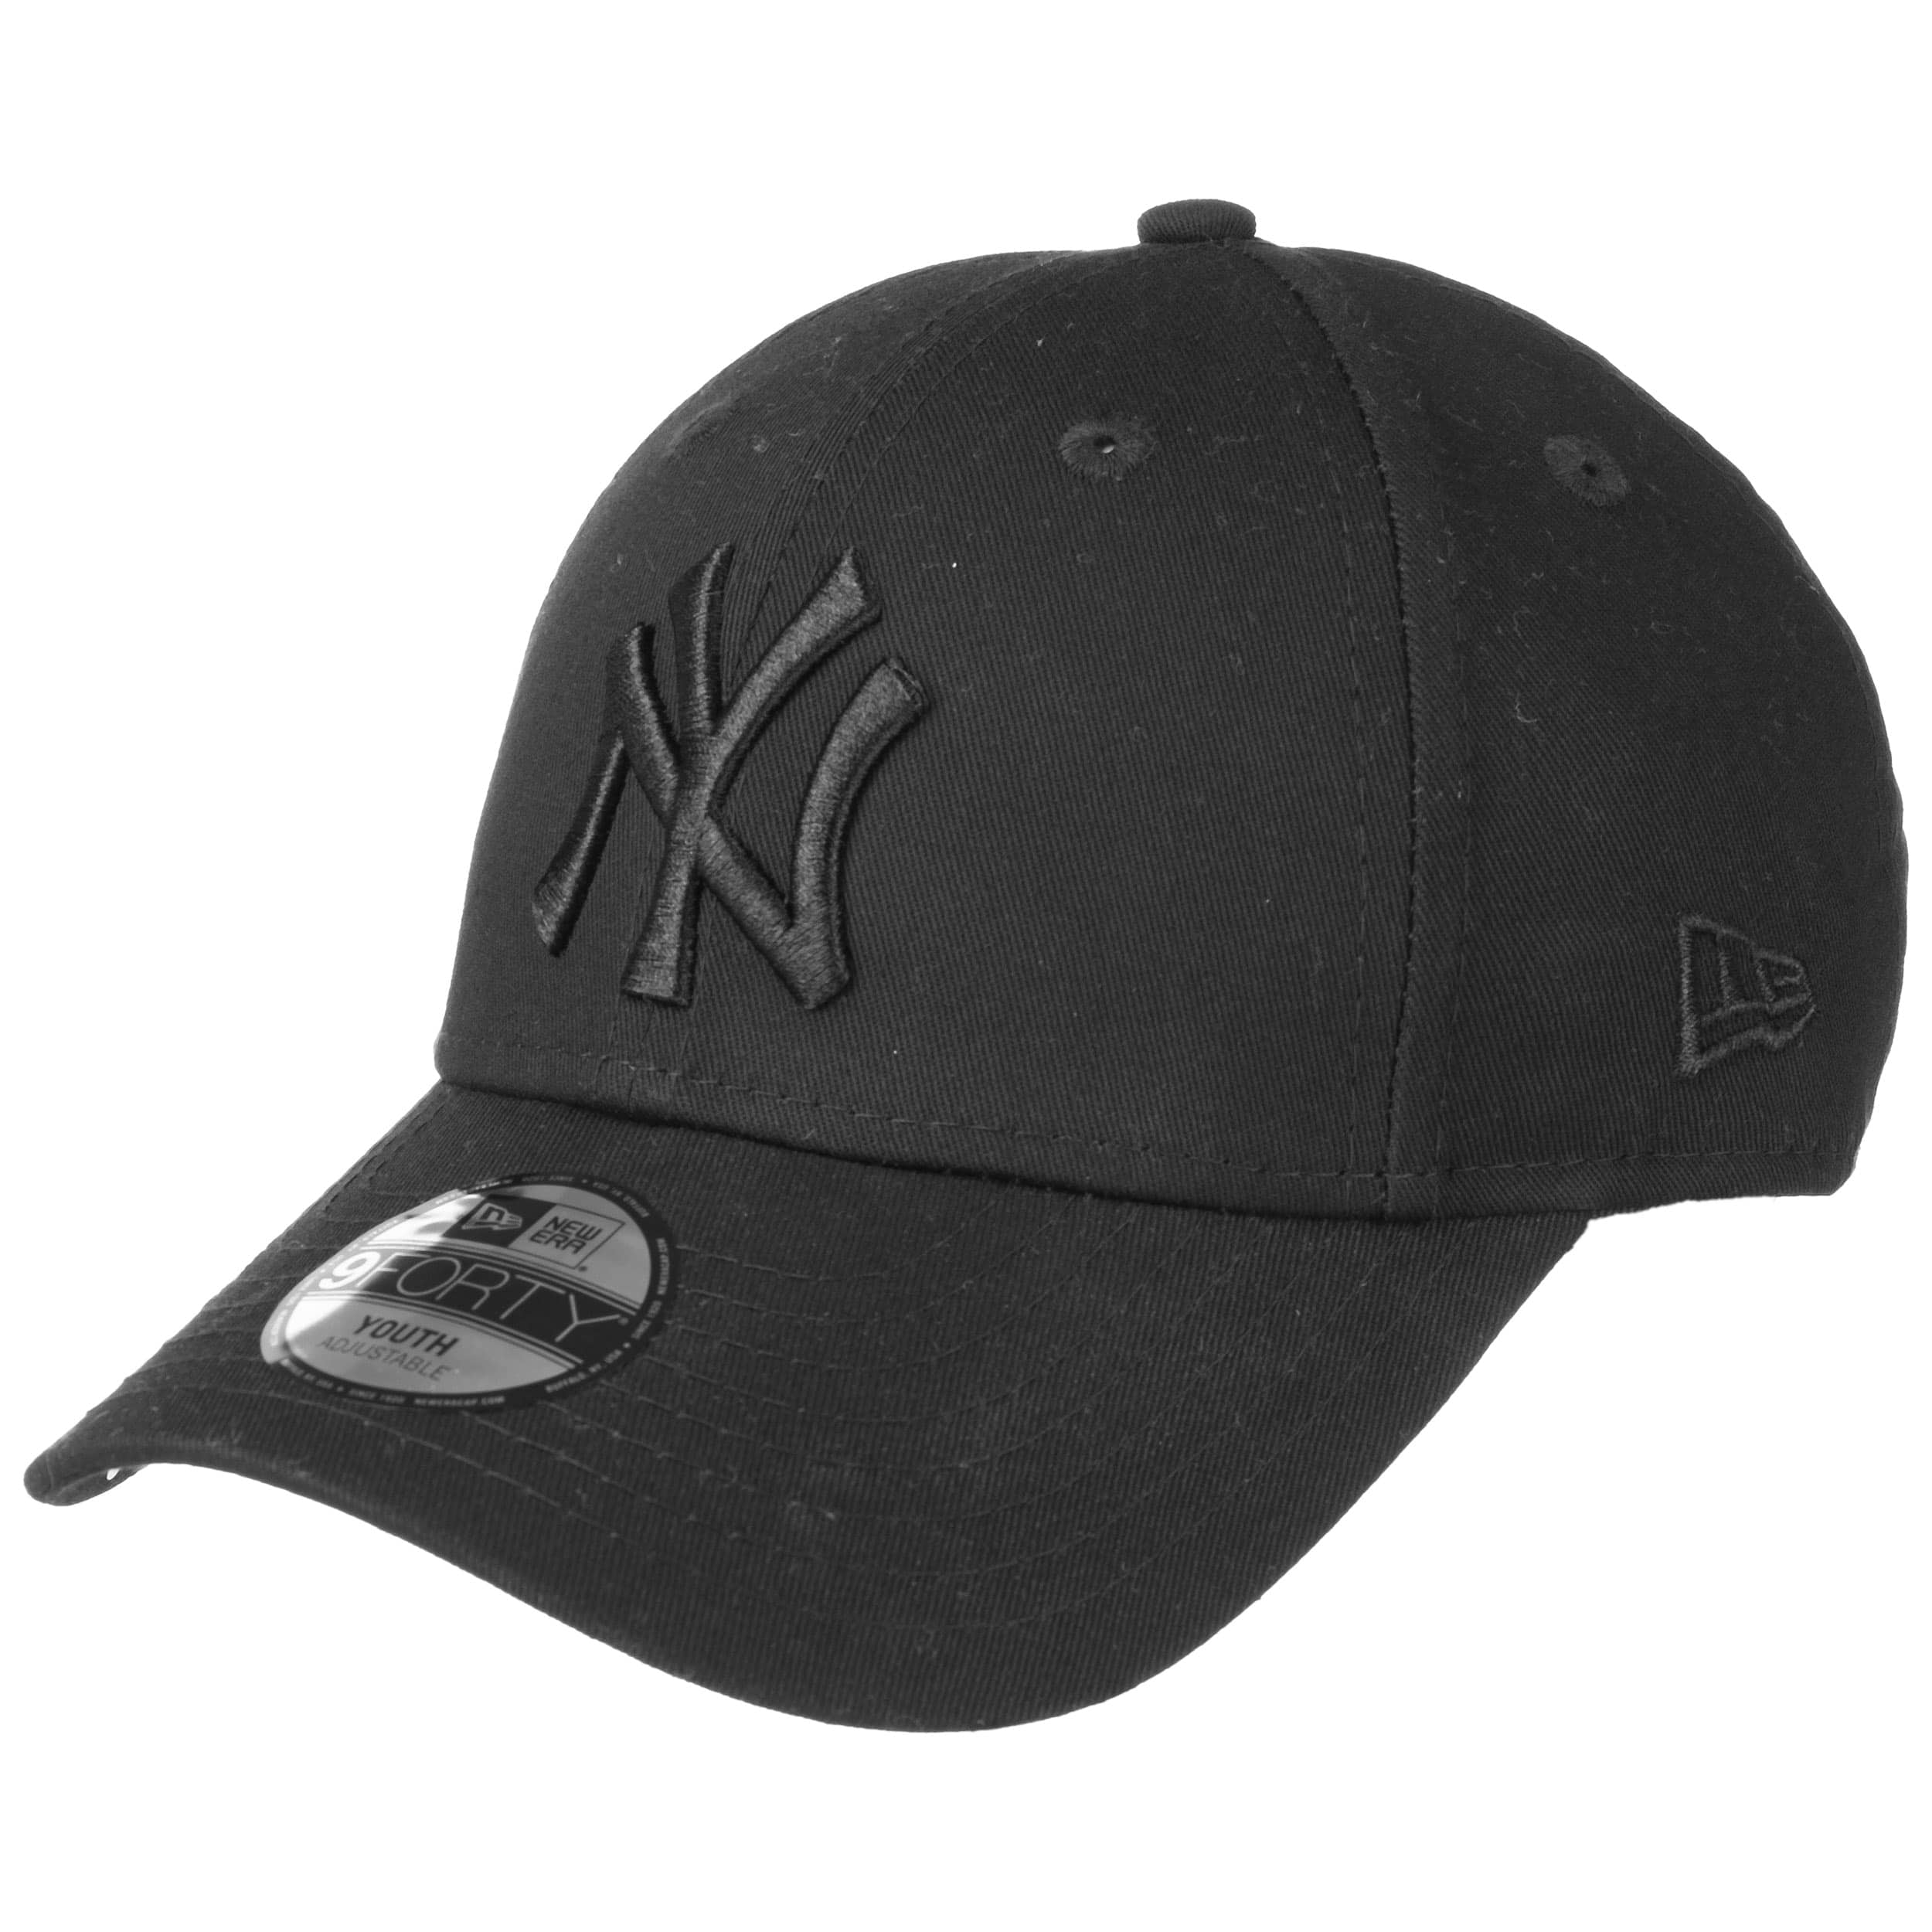 Gorra 9Forty JUNIOR NY Yankees by New Era - Gorras - sombreroshop.es 2763e4e46c8